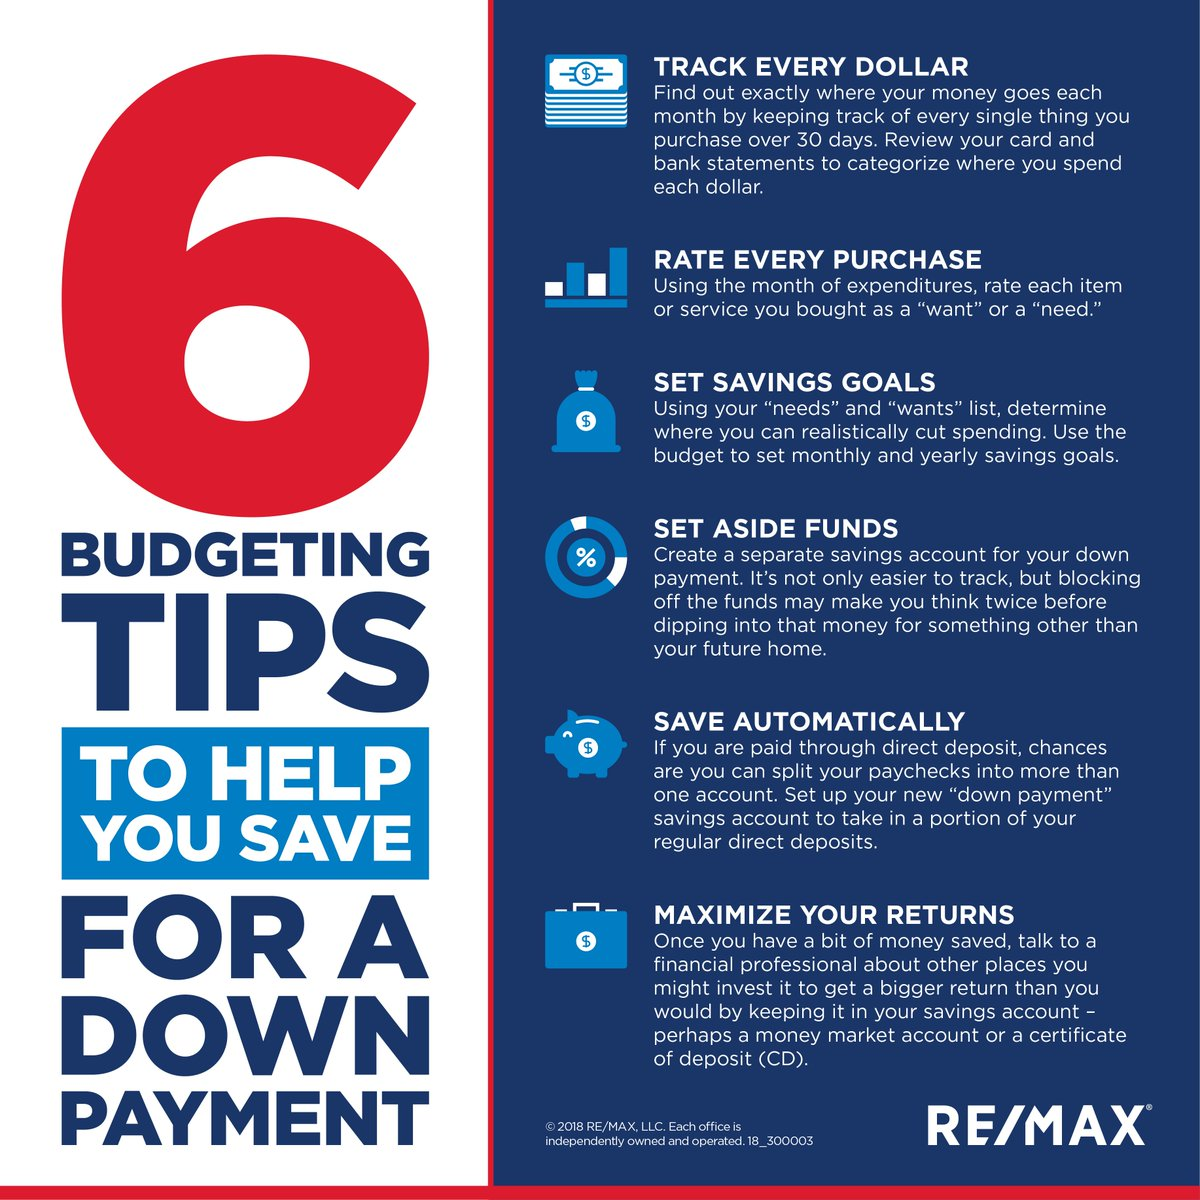 Remax On Twitter It Might Not Be Tomorrow But Owning Your Own